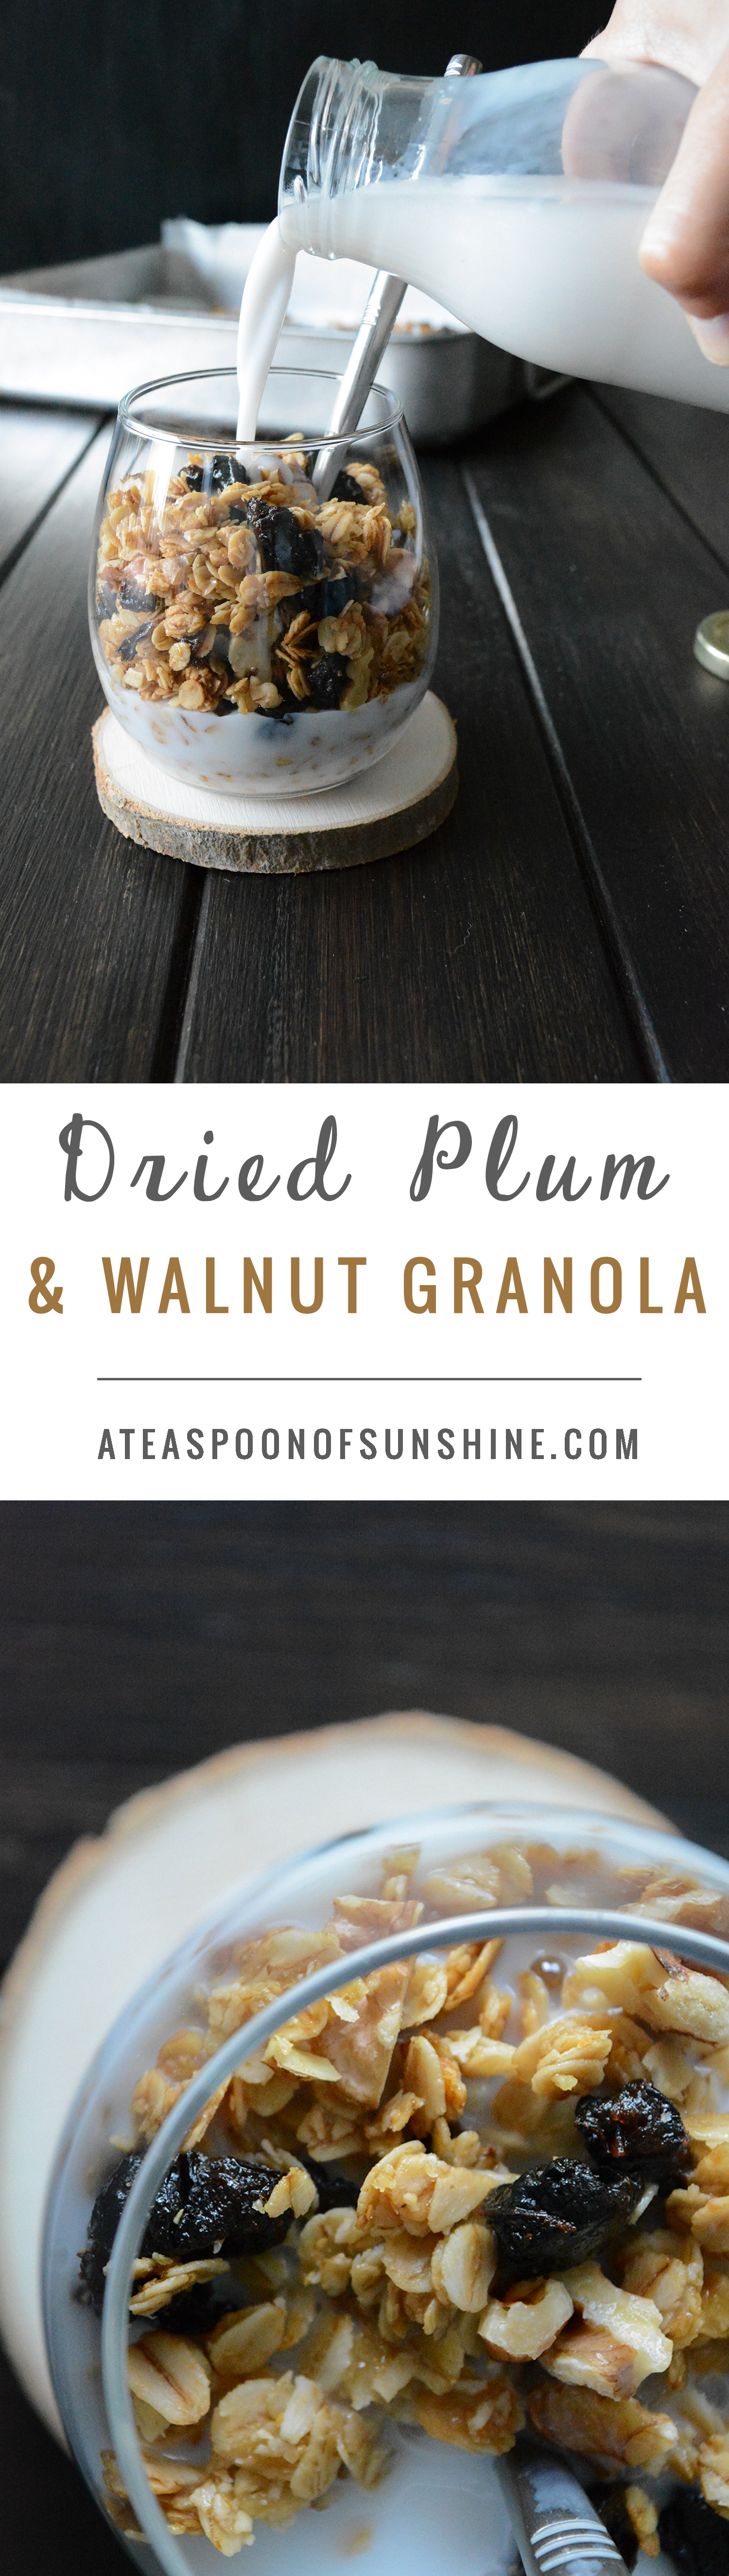 Walnut Granola